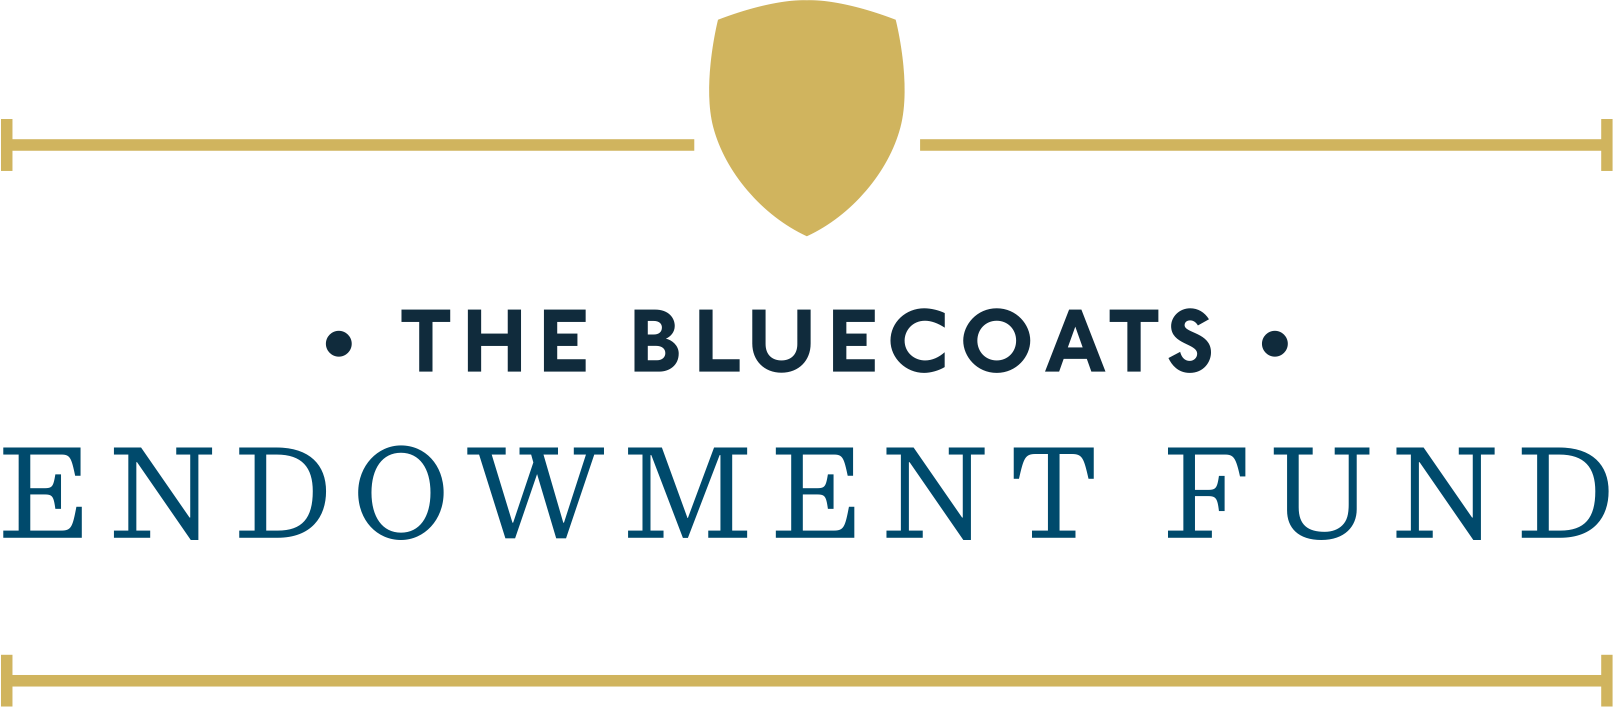 Bluecoats_Endowment_Fund_Logo.png